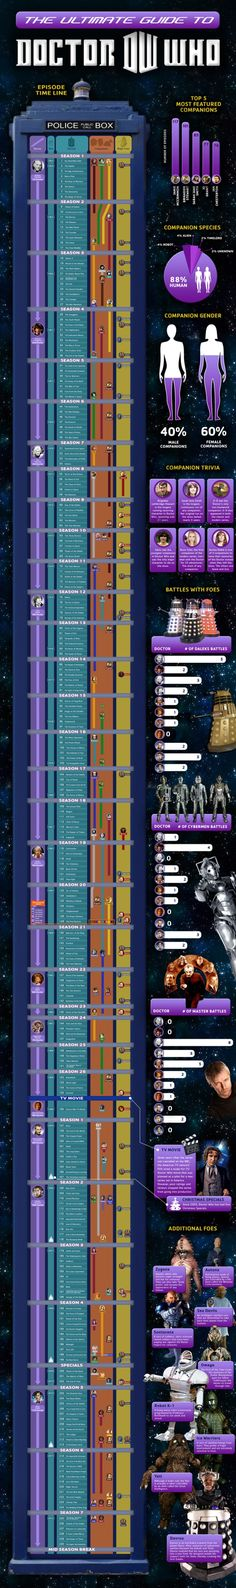 Dr Who Timeline Infographic. Want to know more about all the doctors, companions, foes, and battles for every single episode? Then you're in the right place! Dr Who, Doctor Who Poster, The Doctor, Amy Pond, Rose Tyler, Time Lords, Christopher Eccleston, Matt Smith, David Tennant